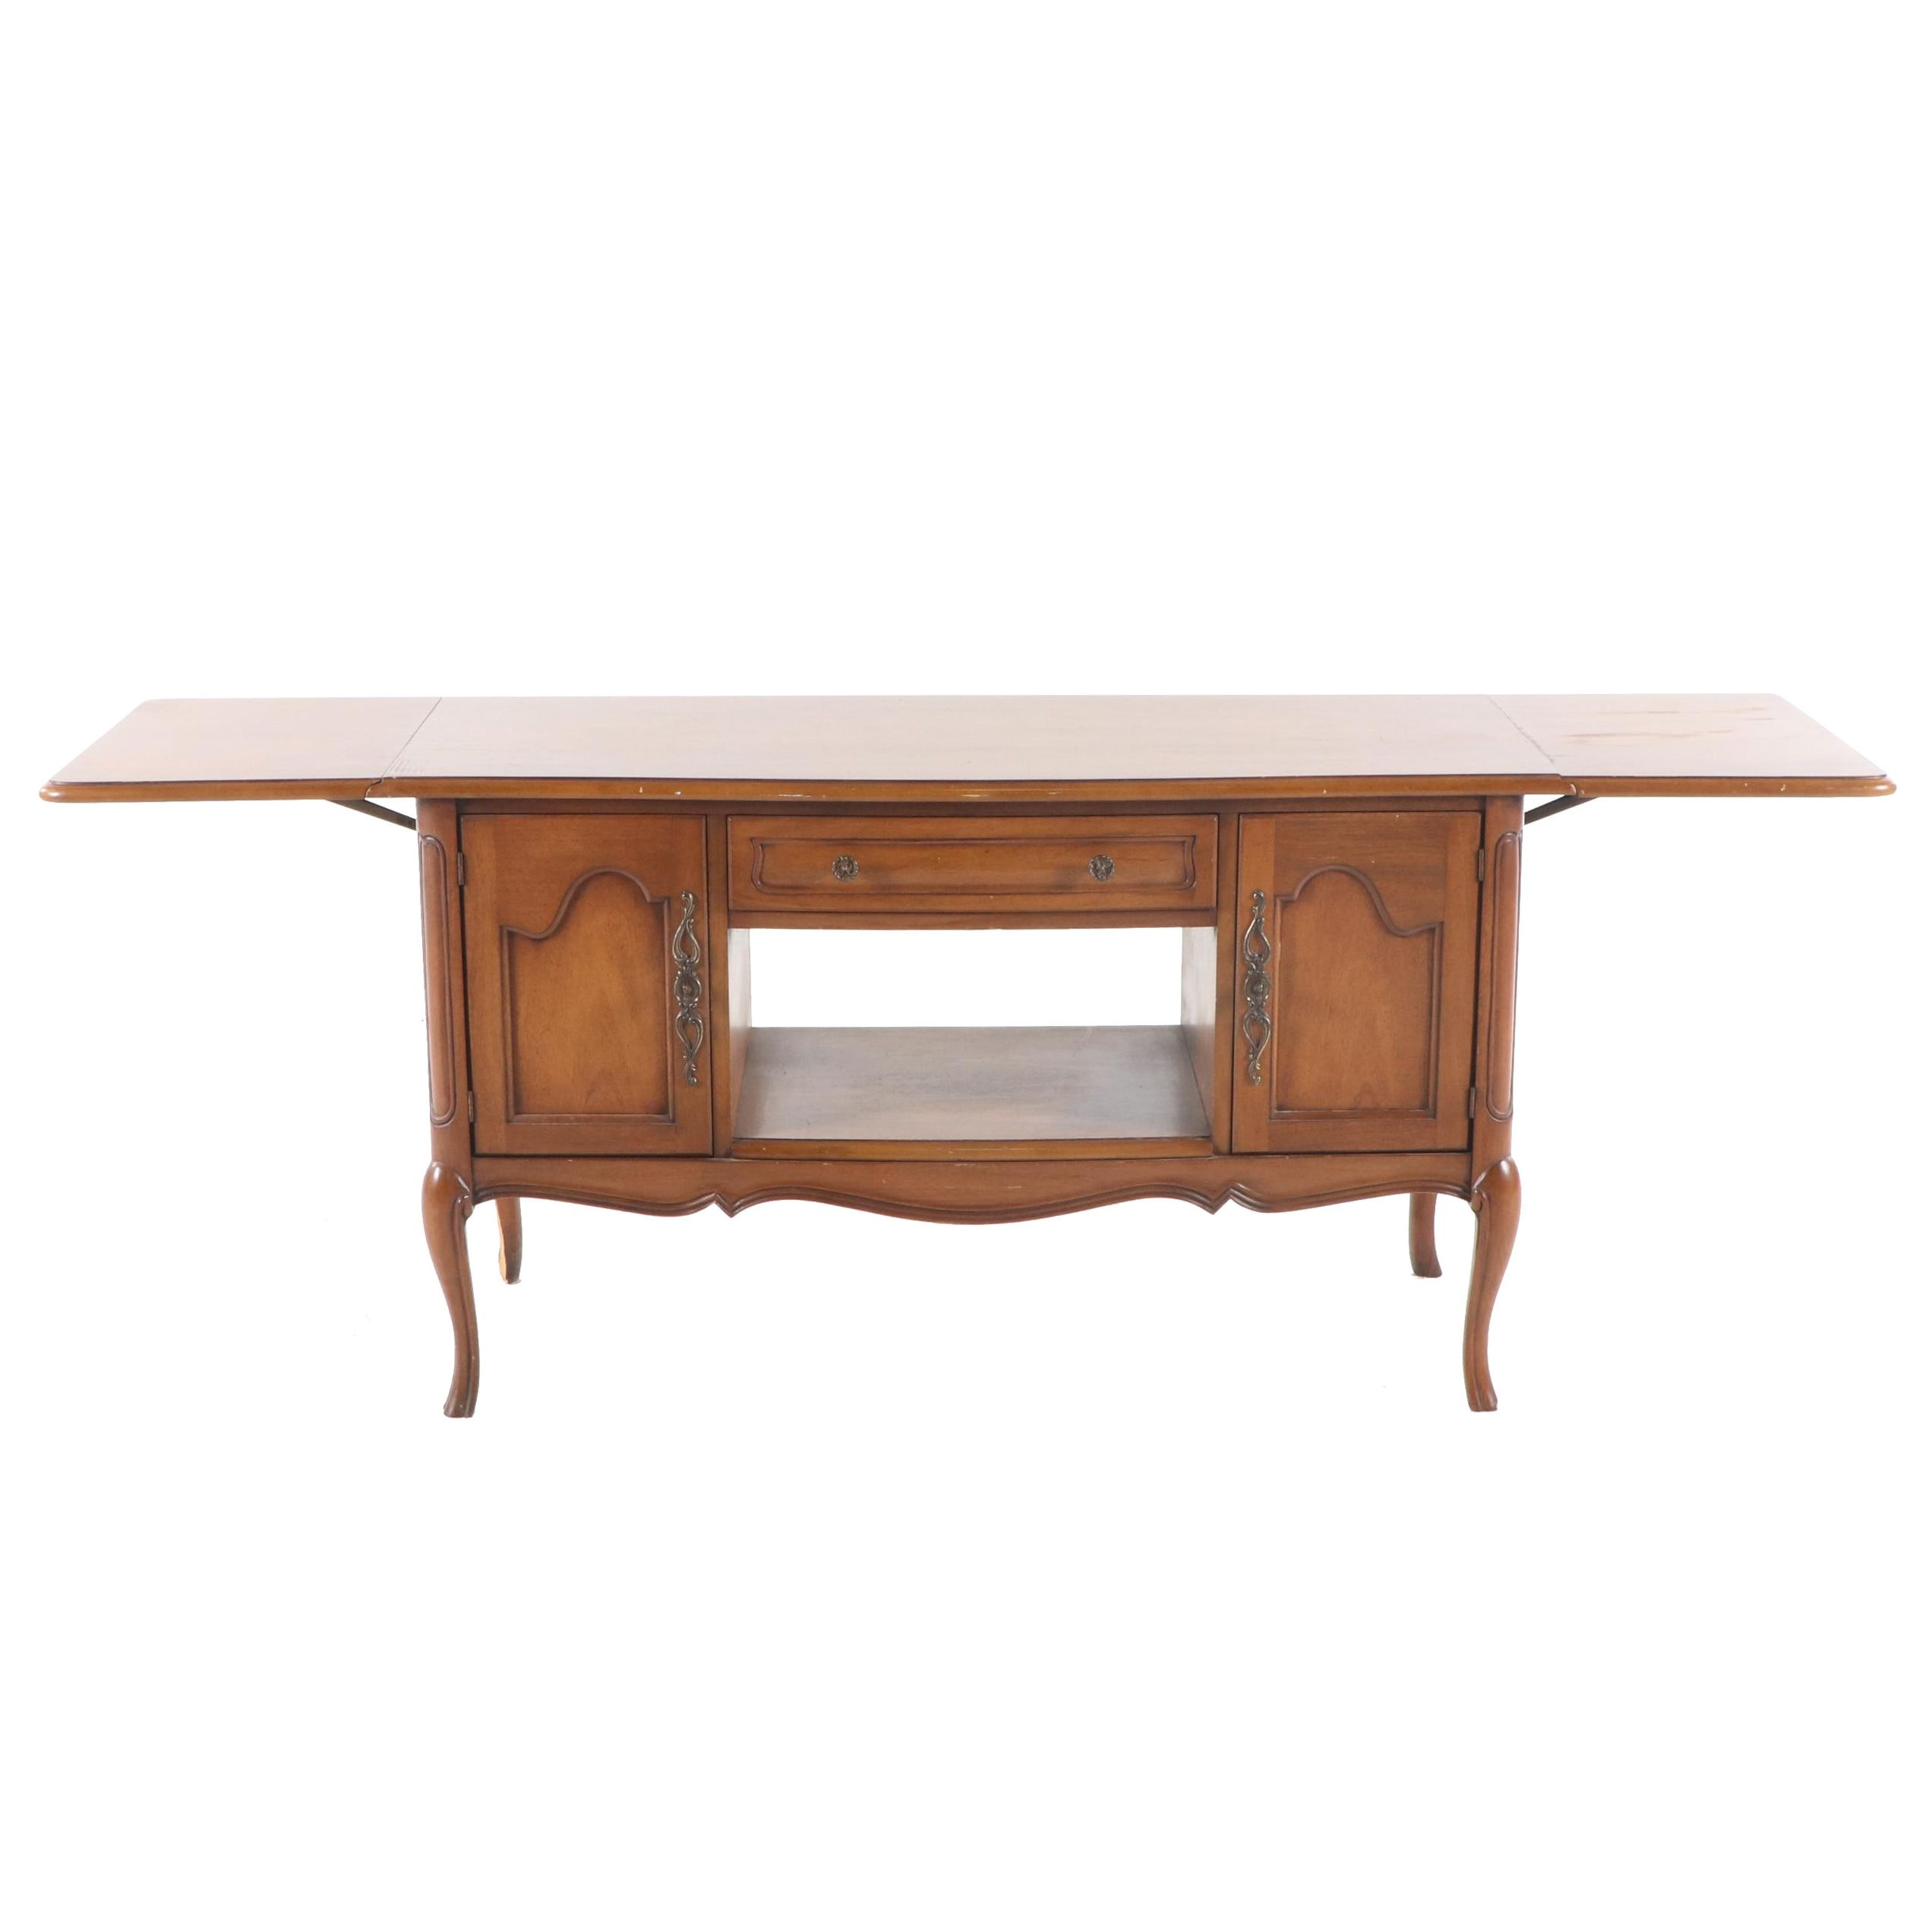 French Provincial Style Buffet by White Fine Furniture